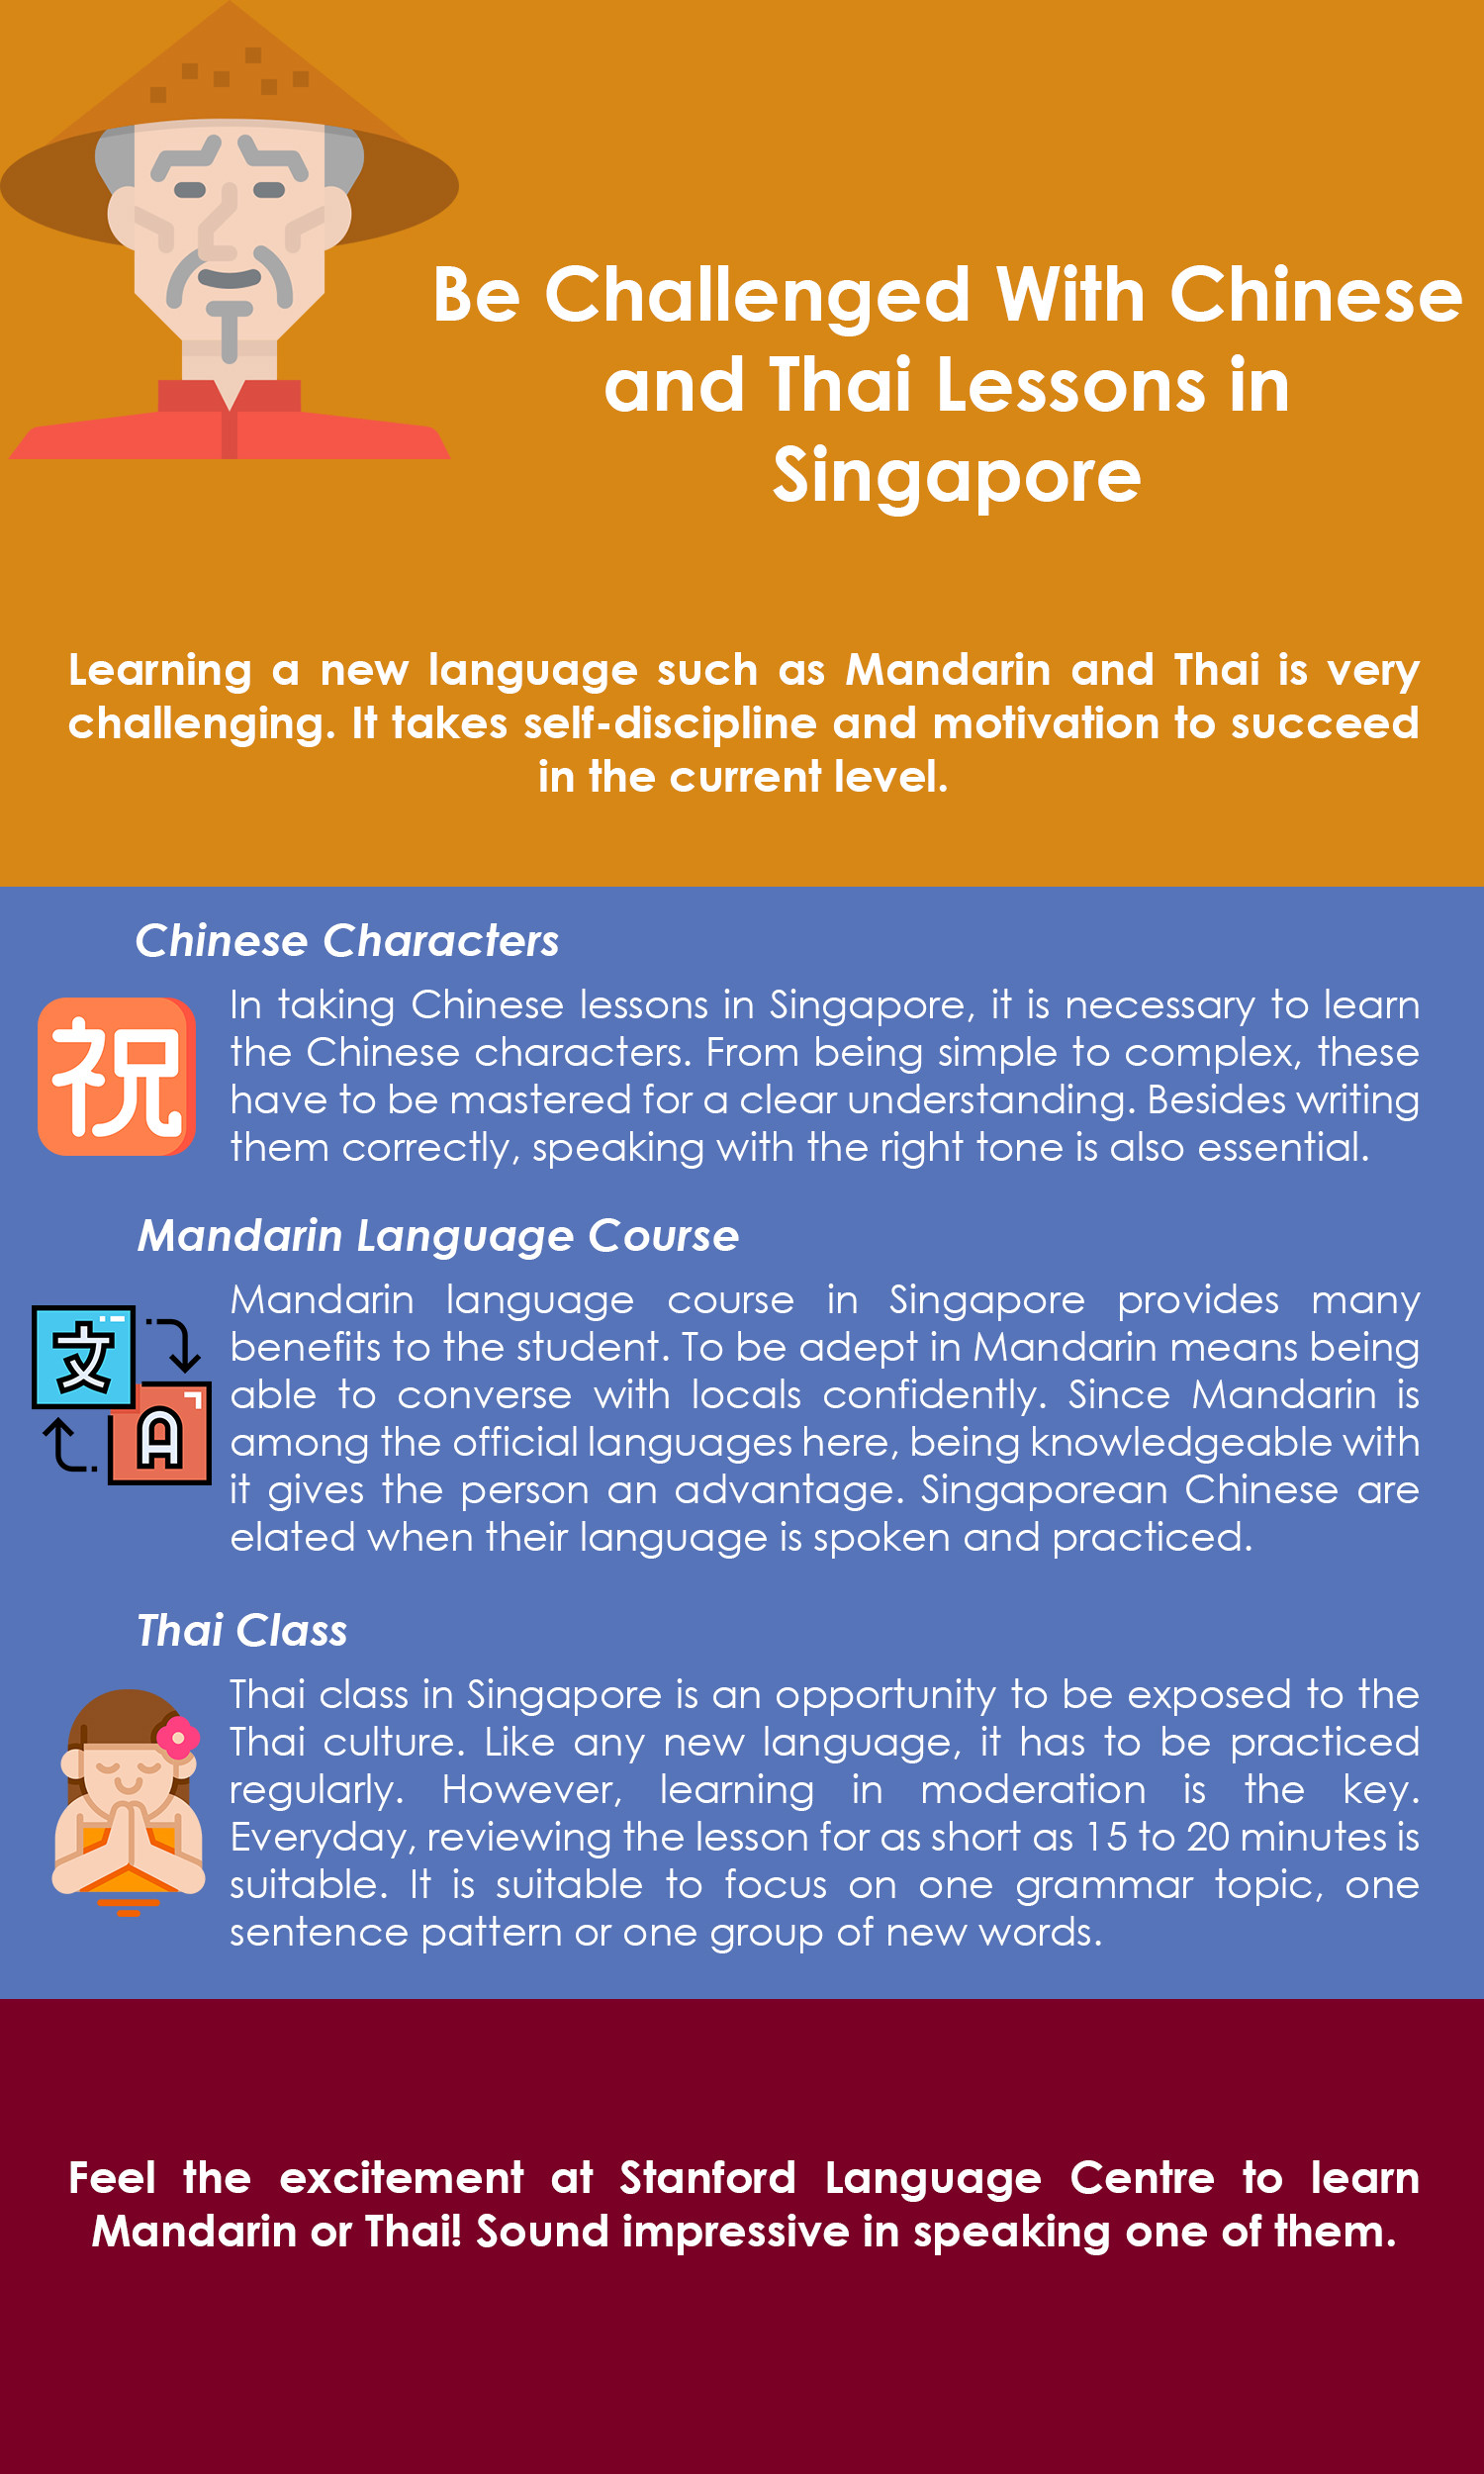 Be Challenged With Chinese and Thai Lessons in Singapore Infographic